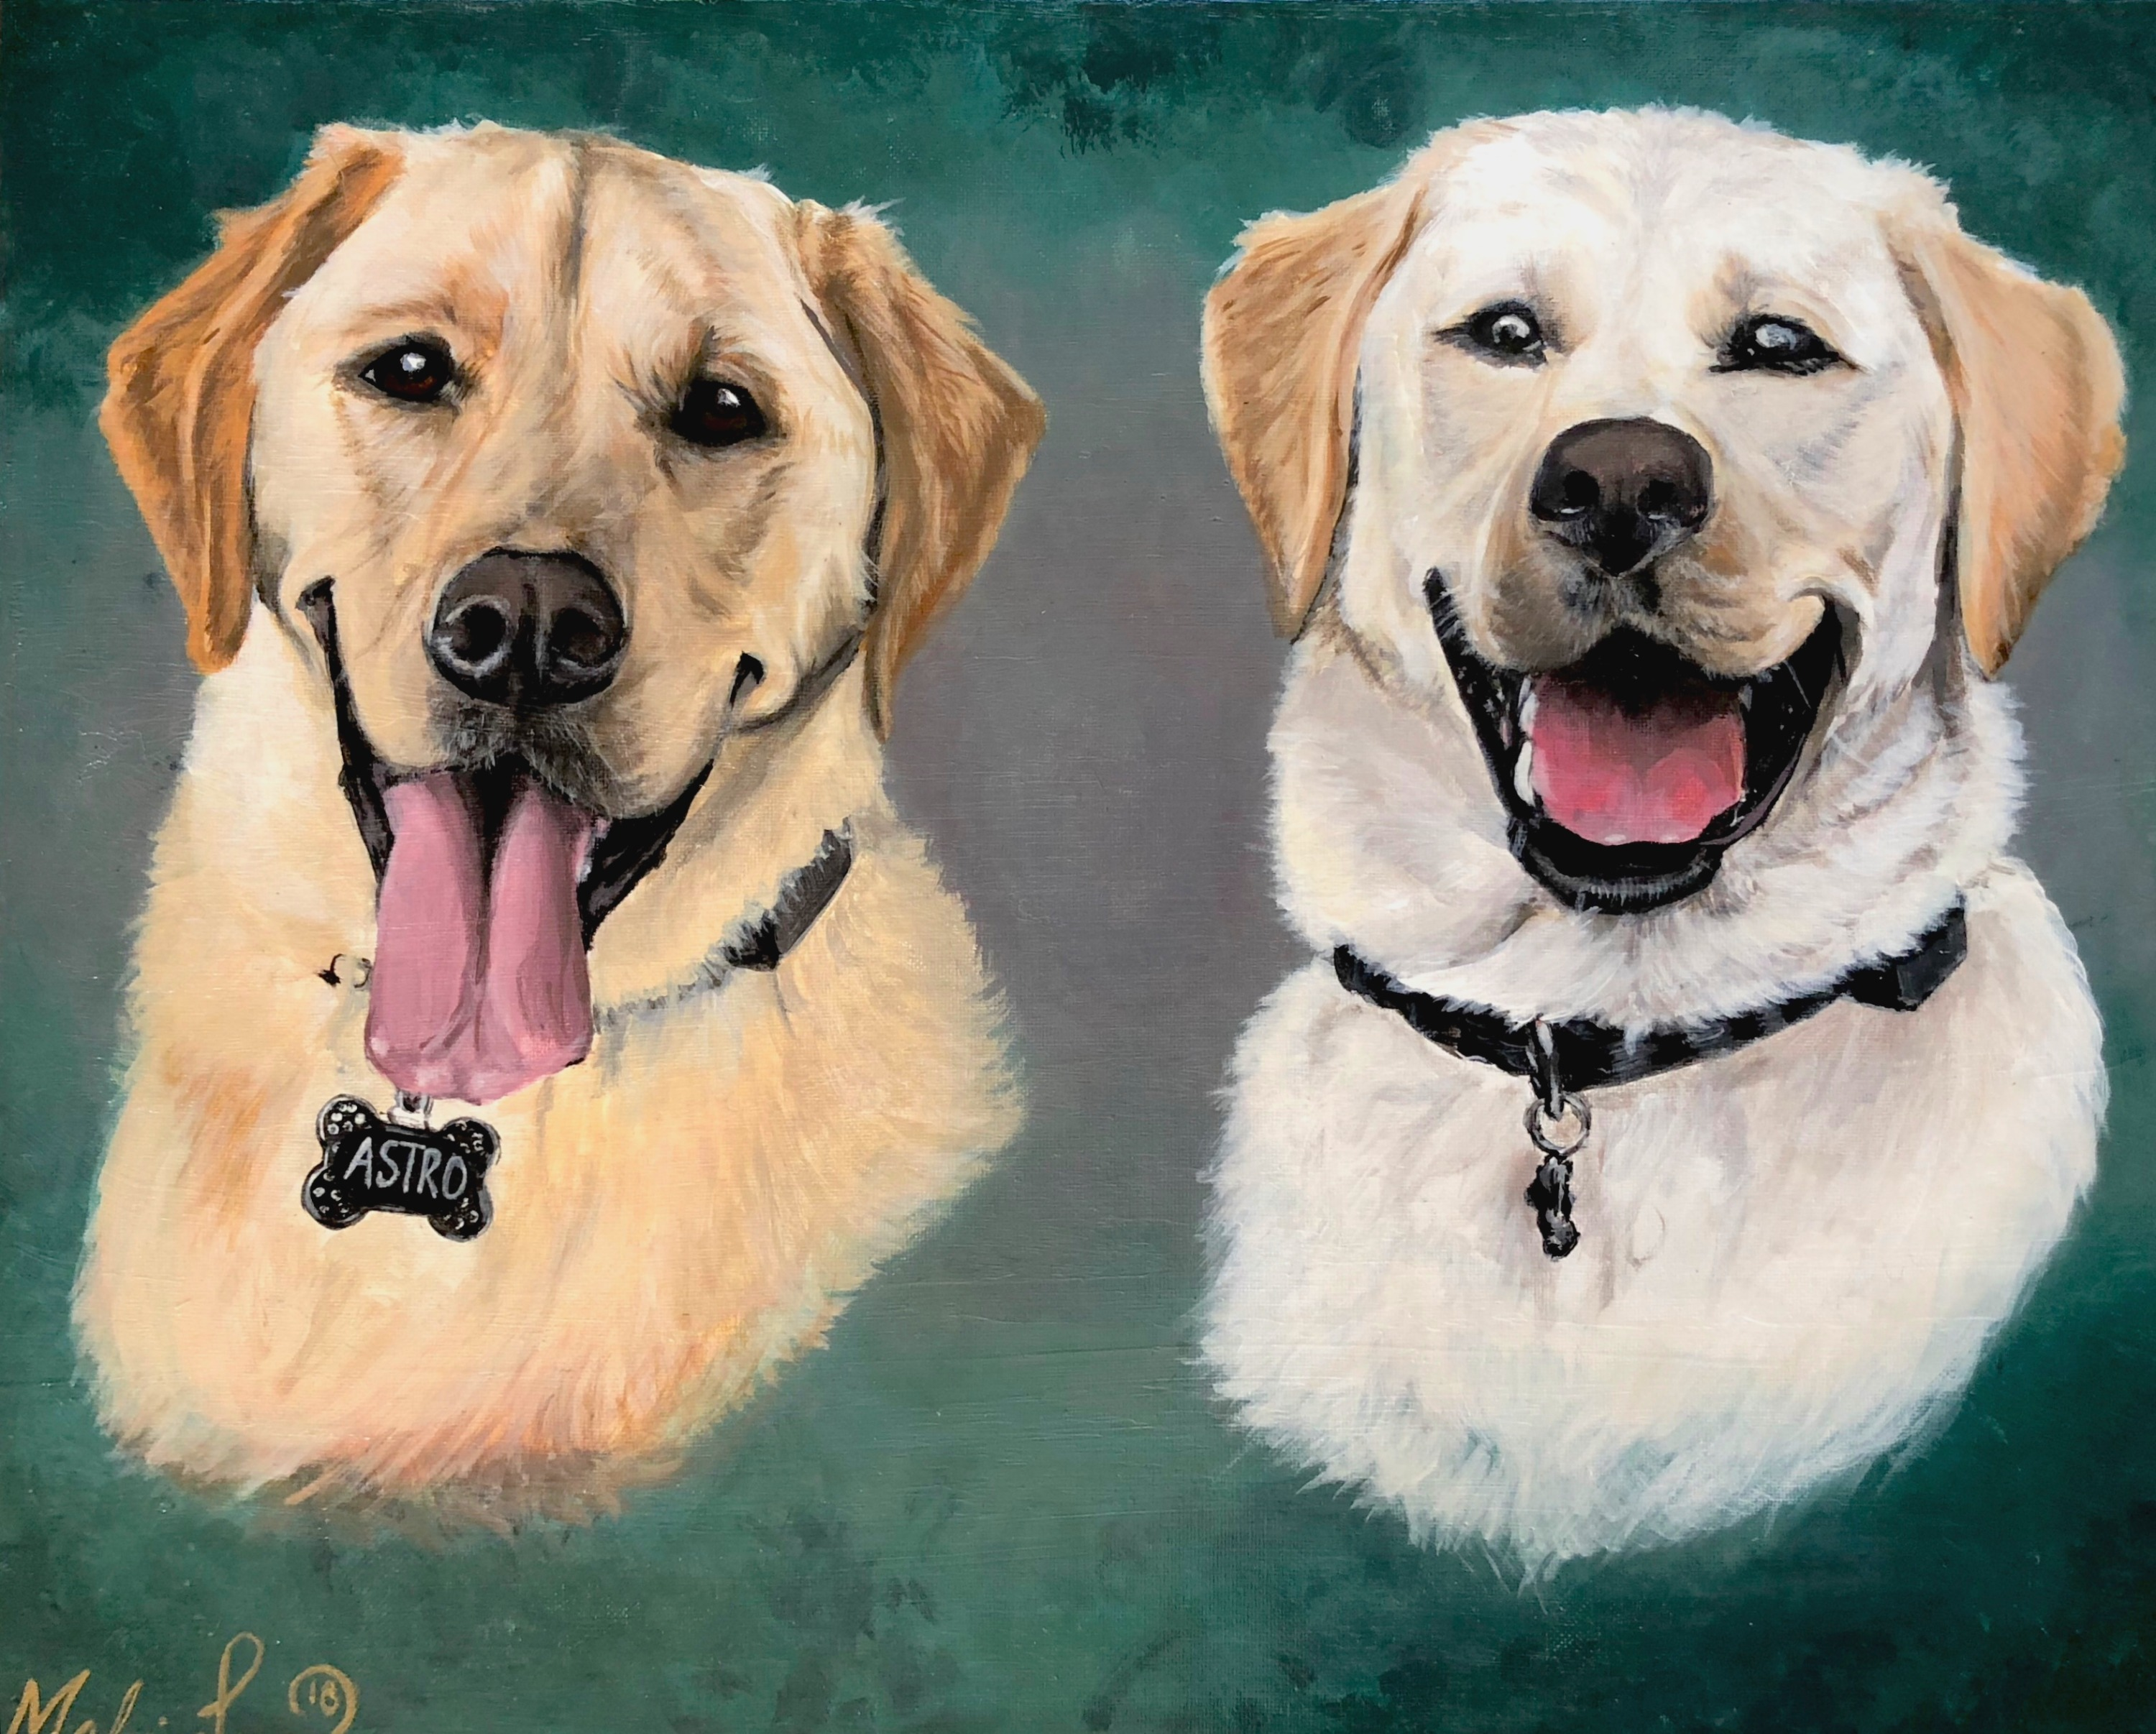 """Astro and Comet"" commissioned portrait"